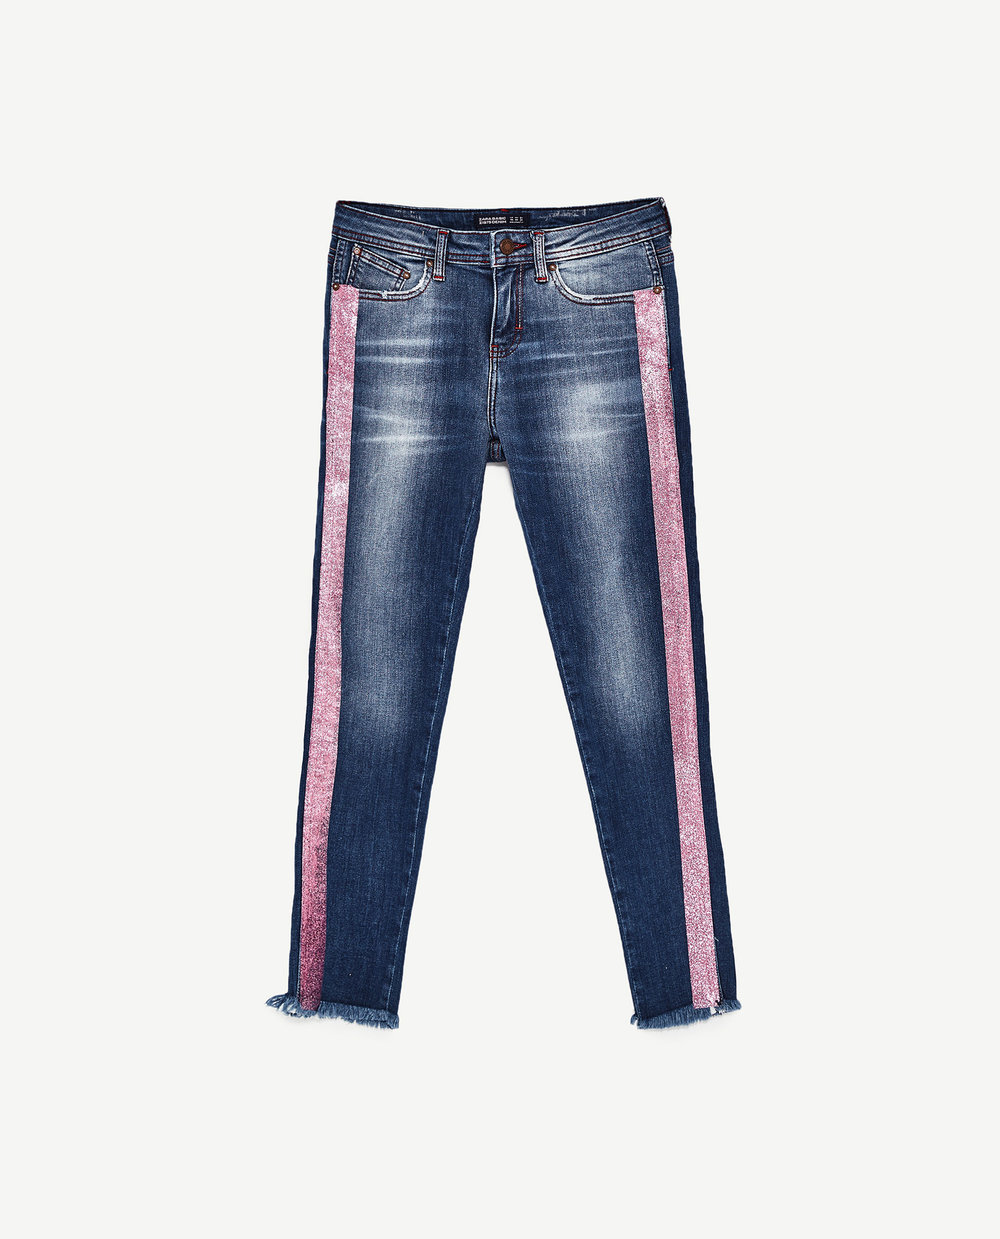 Ziggy baby Mid Rise Jeans with Pink Band / Zara / $30